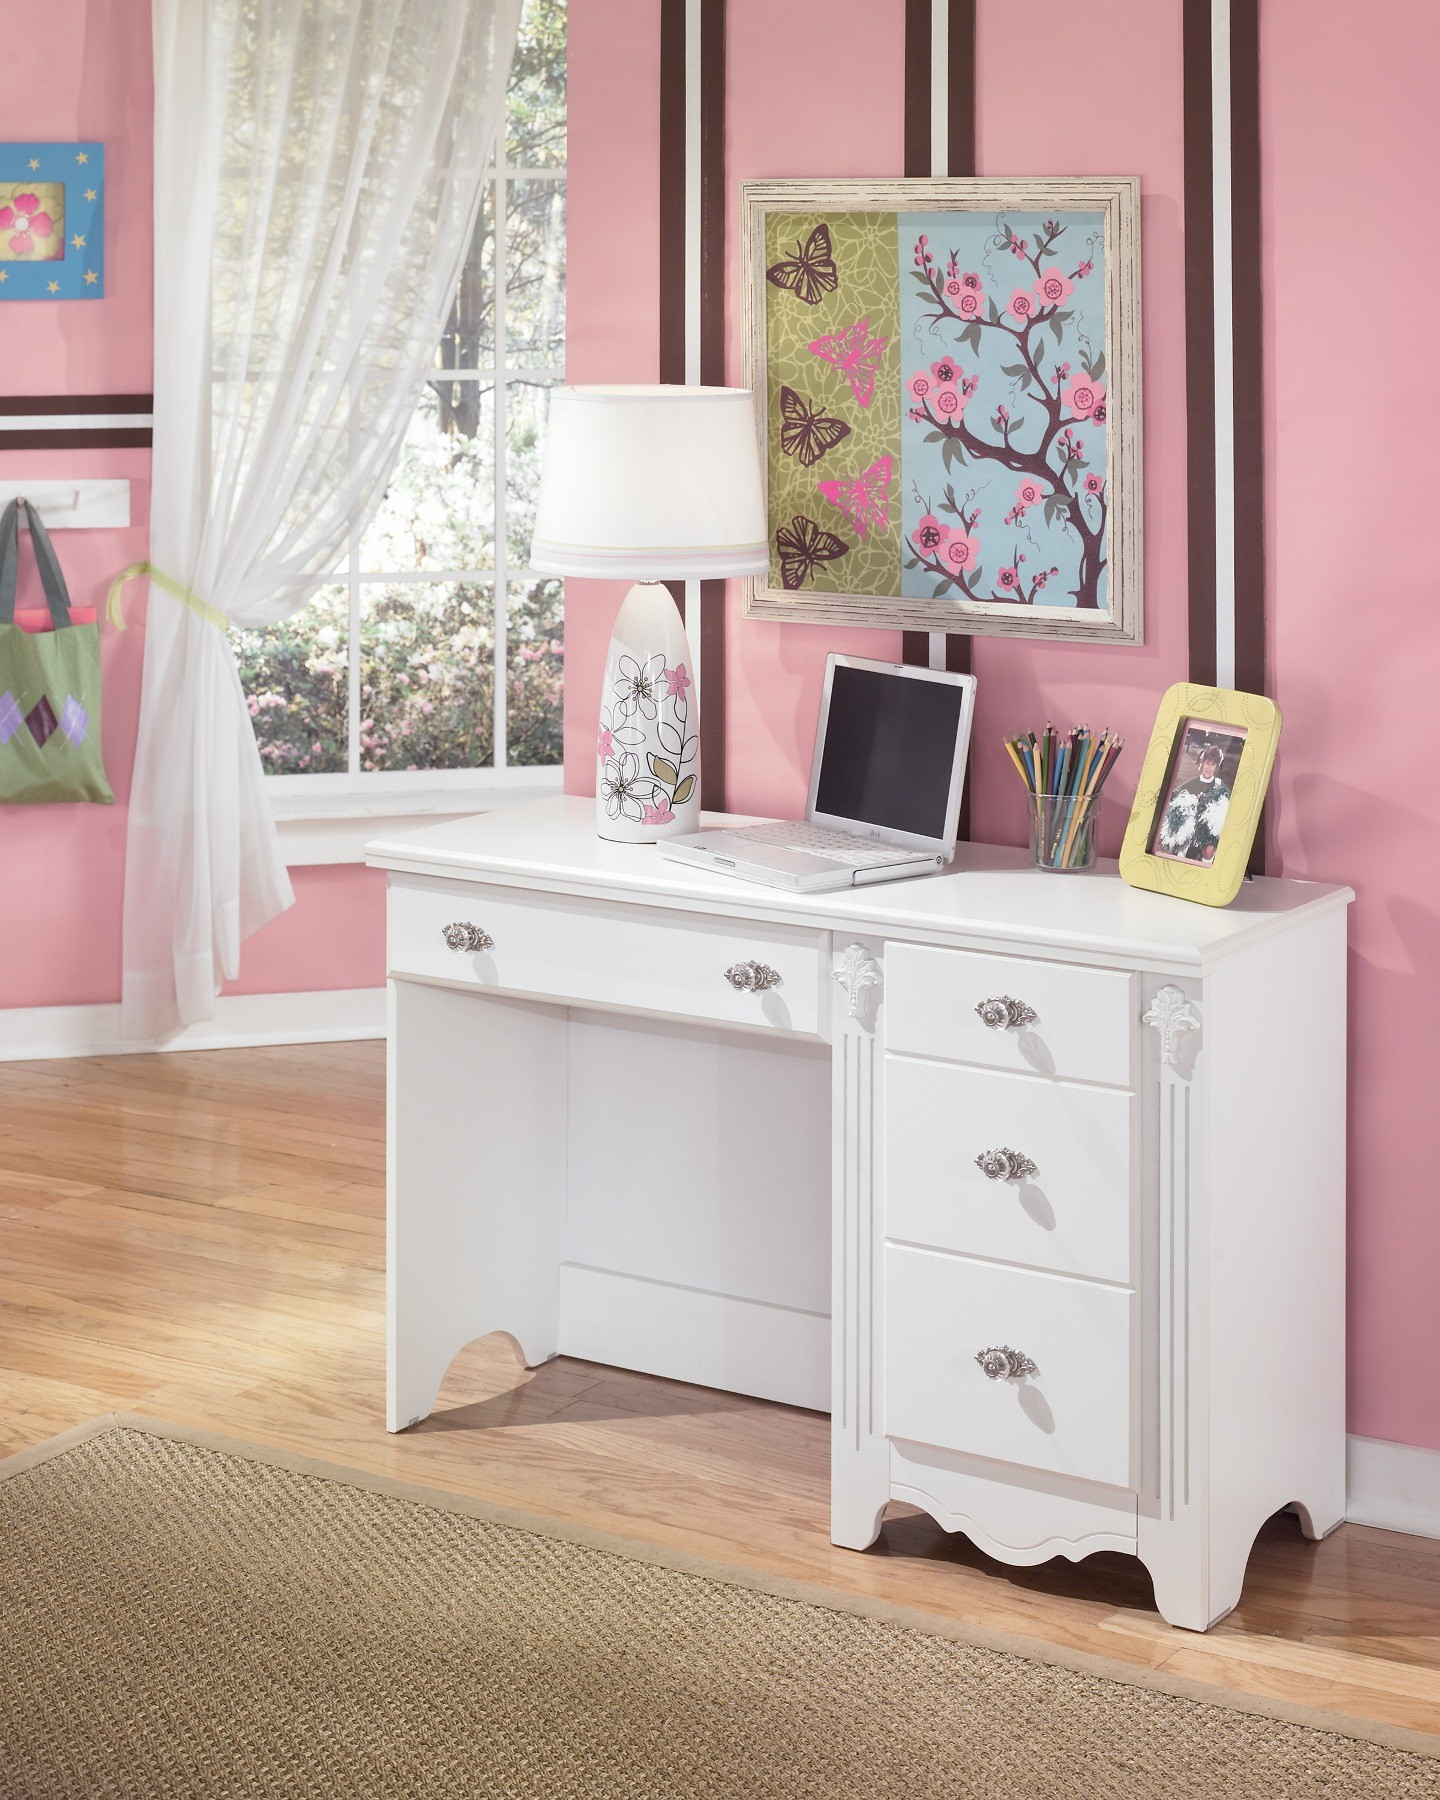 Bedroom Furniture With Desk: Exquisite Bedroom Desk From Ashley (B188-22)